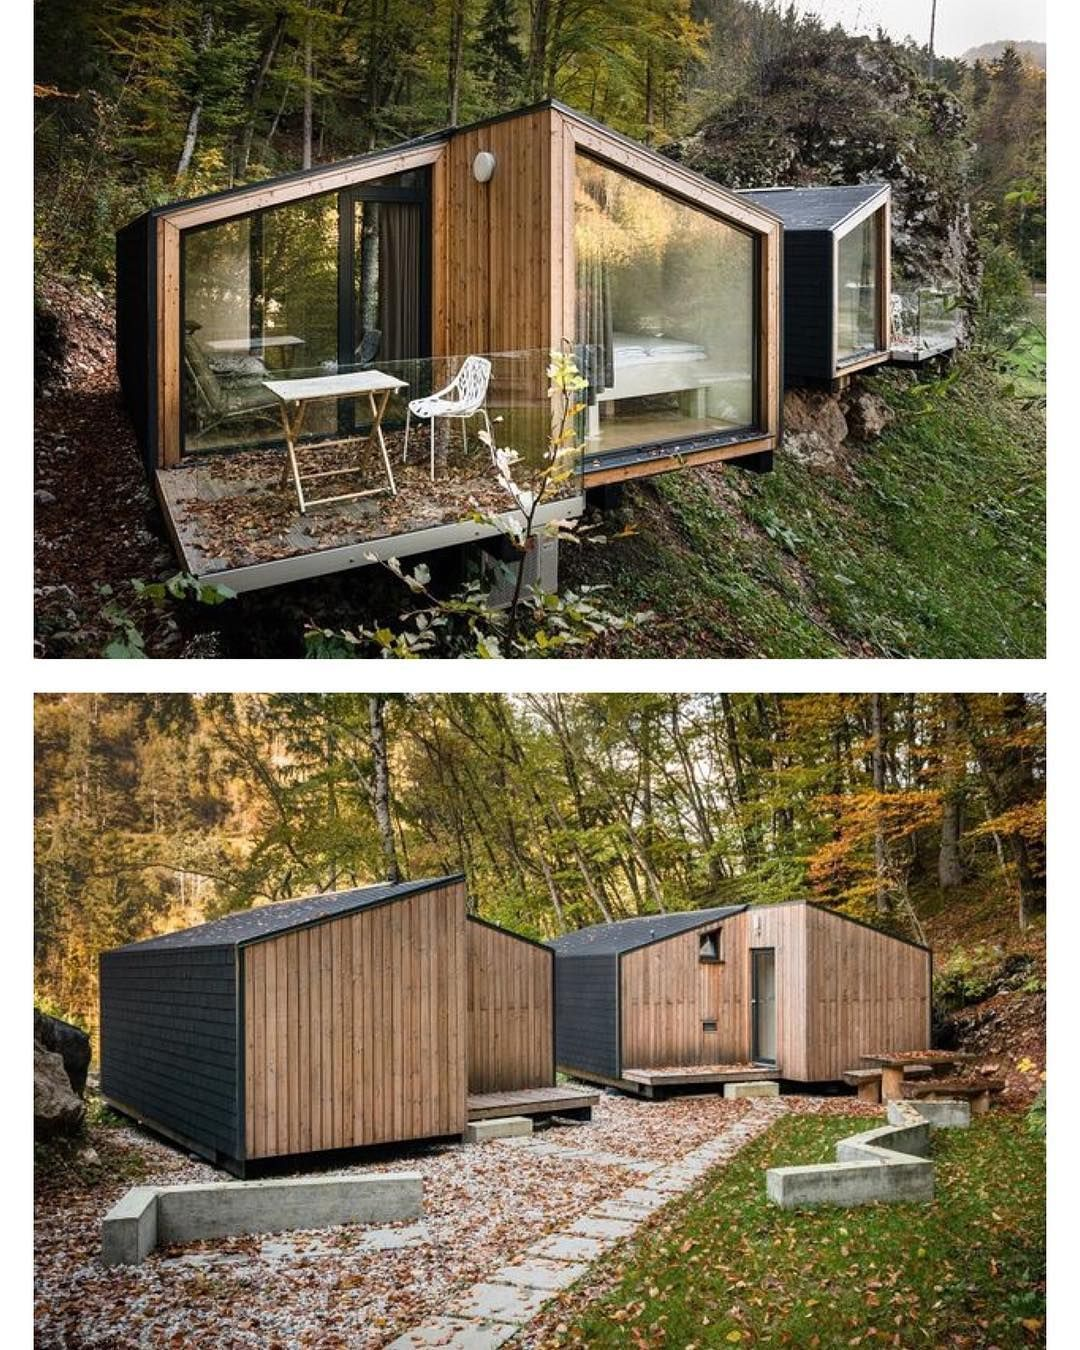 Tiny Home Designs: 21 The Most Unique Modern Home Design In The World [NEW